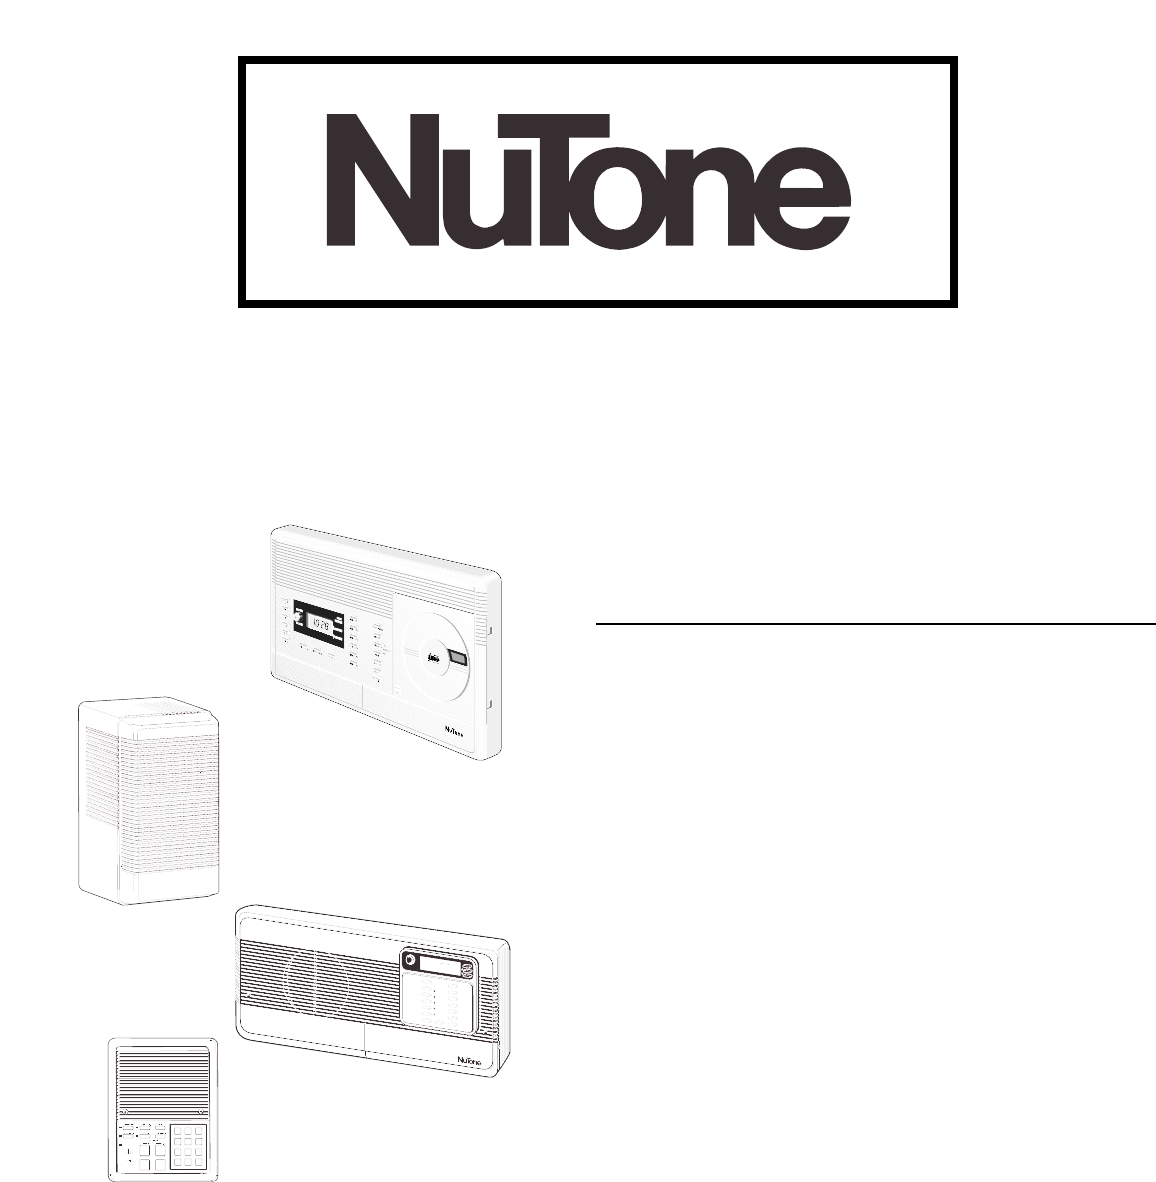 Nutone Intercom System Ik 25 Users Manual FS 1600 Guide on redman mobile home wiring diagram, alarm wiring diagram, doorbell installation diagram, dryer wiring diagram, smoke detectors wiring diagram, generac generator wiring diagram, washer wiring diagram, intercom connection diagram, doorbell transformer wiring diagram, central vacuum wiring diagram, nutone 3303 master station manual, nutone clock door chime wiring-diagram, security camera wiring diagram, broan wiring diagram, nutone door bell installation, central vac wiring diagram,